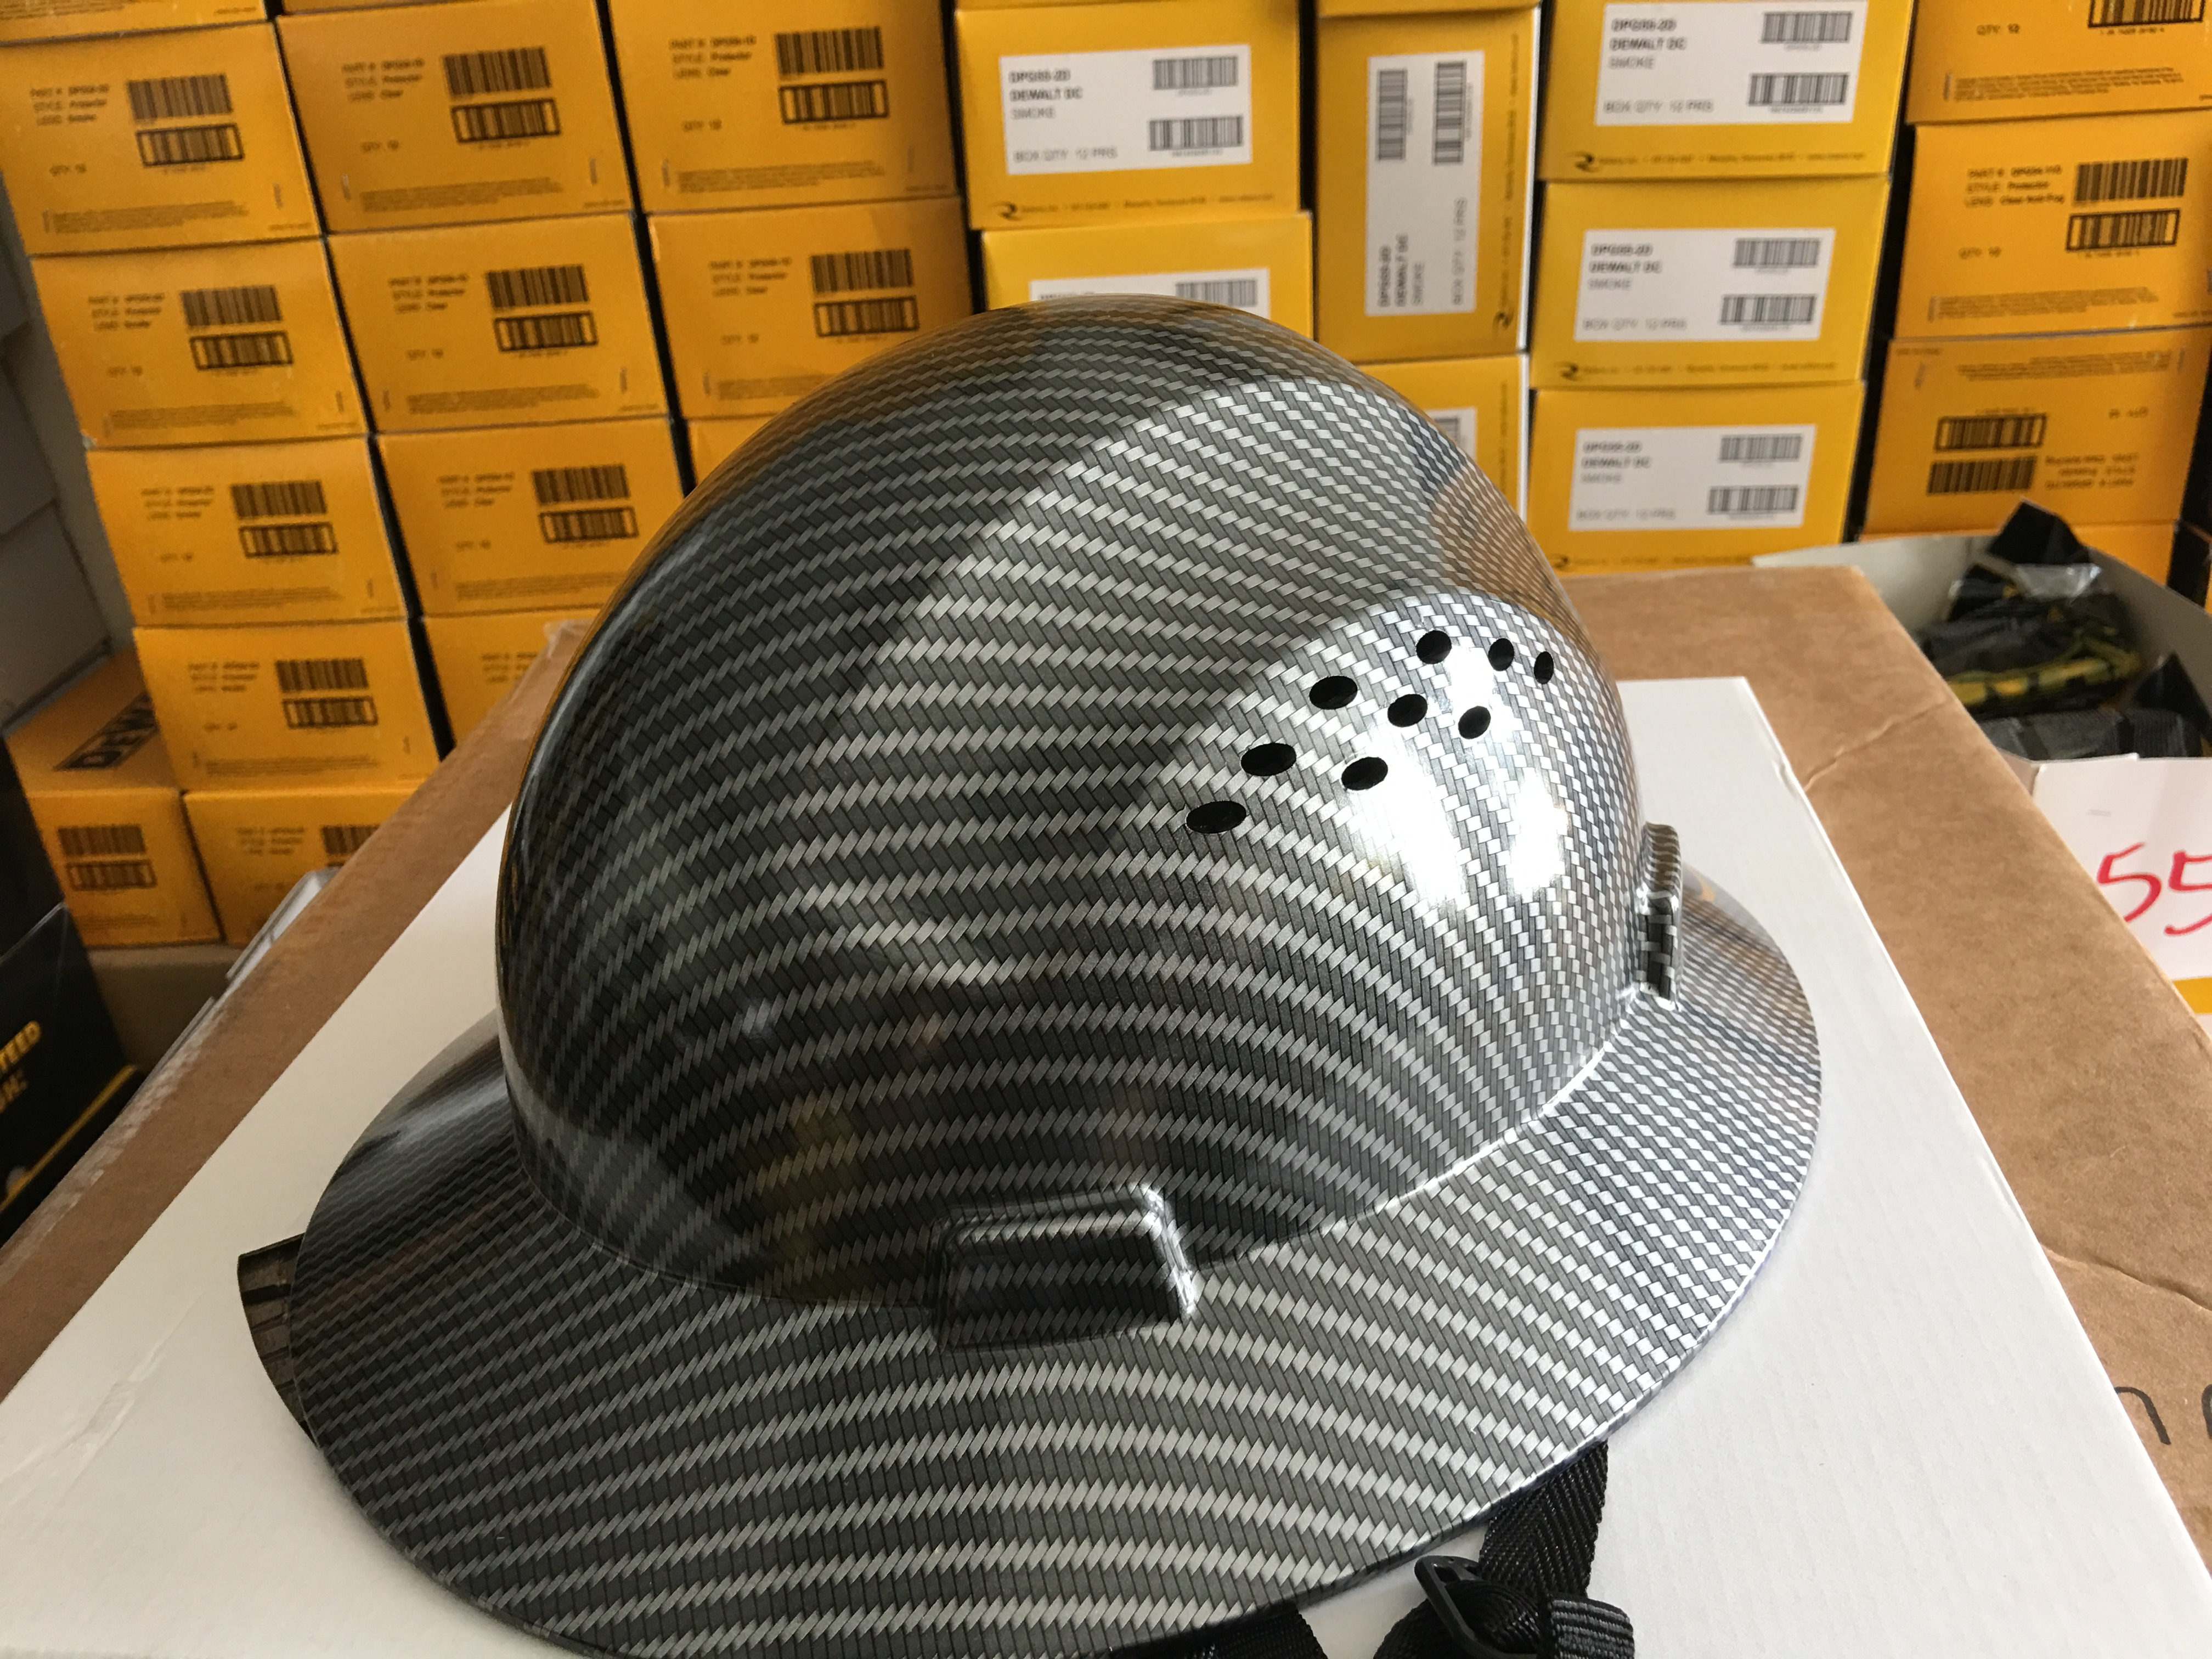 HDPE Hydro Dipped Black Full Brim Hard Hat with Fas-trac Suspension by Truecrest